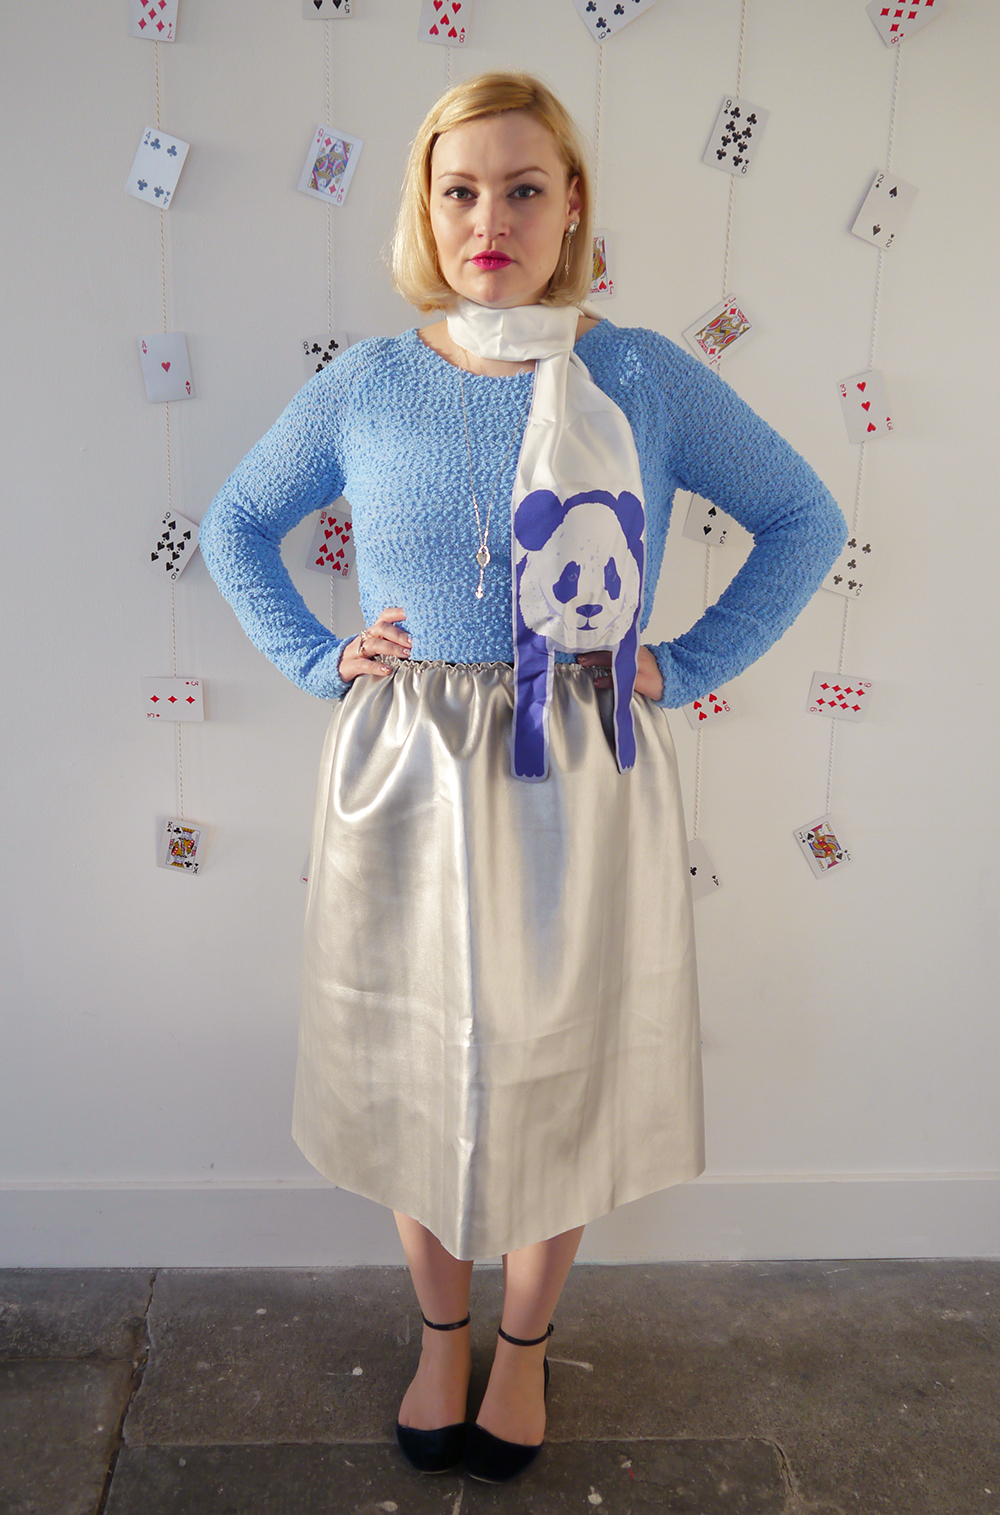 Alice in wonderland, hair bow, scarf inspiration, scarf bow, Karen Smith jewellery, Cleo Fern Mercury scarf, panda scarf, blue and silver outfit, scottish blogger